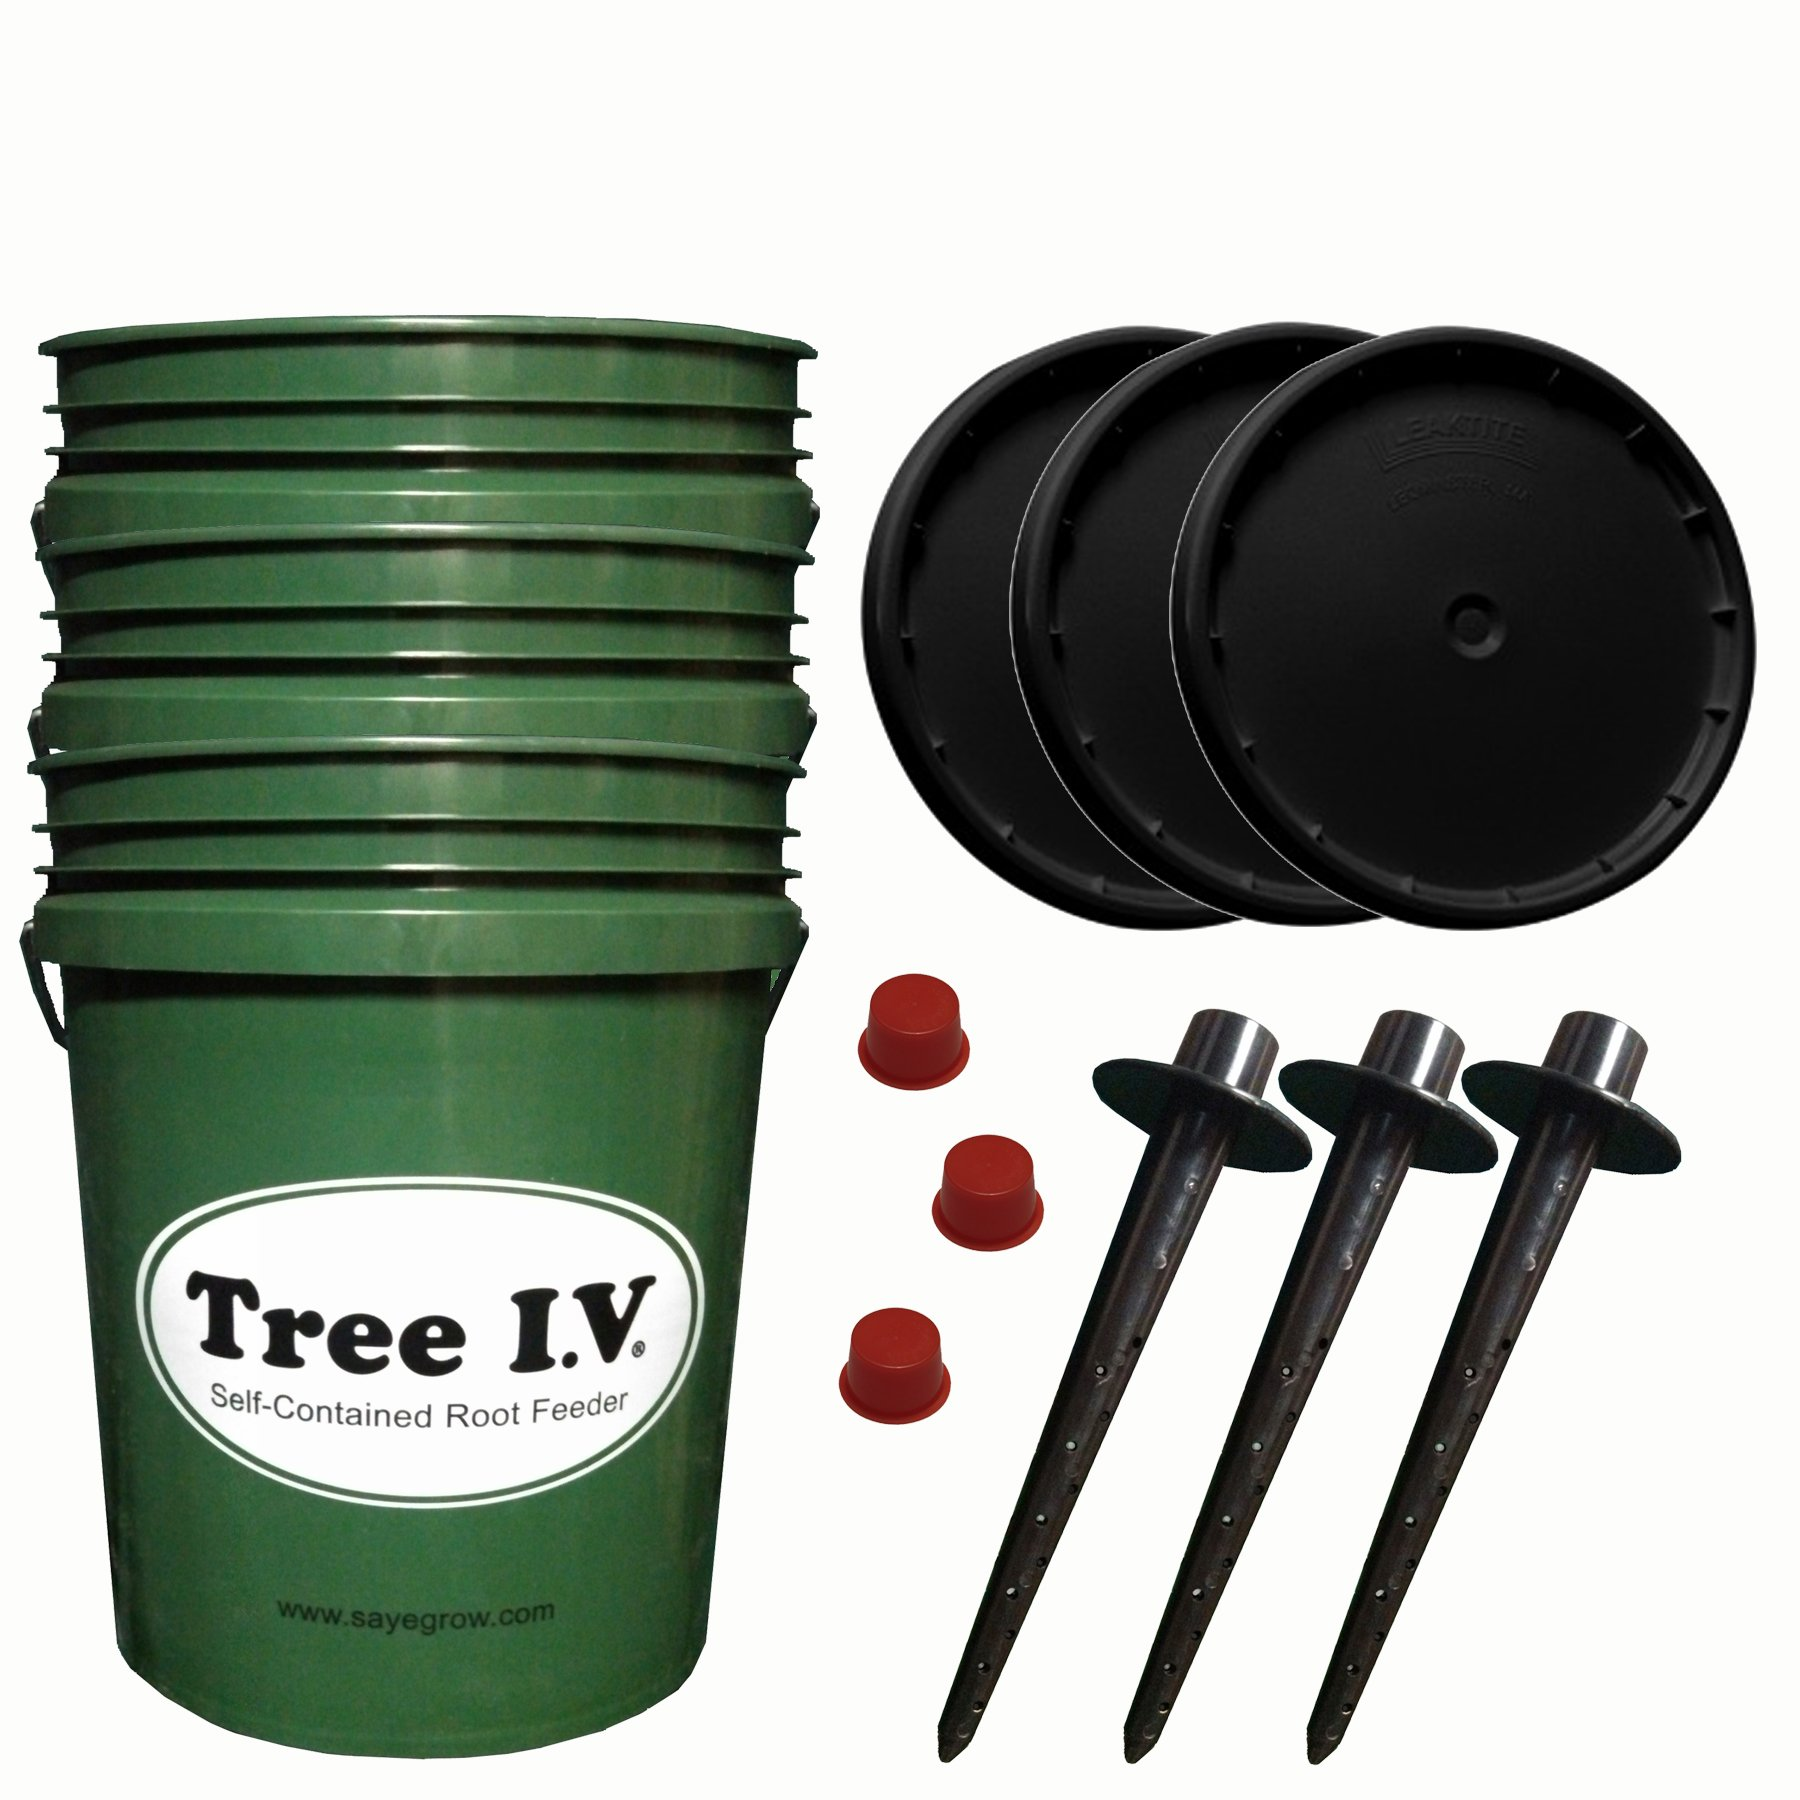 Tree I.V. 5-Gal Root Seeker   Fill and Haul Package   3-pk by Tree I.V.